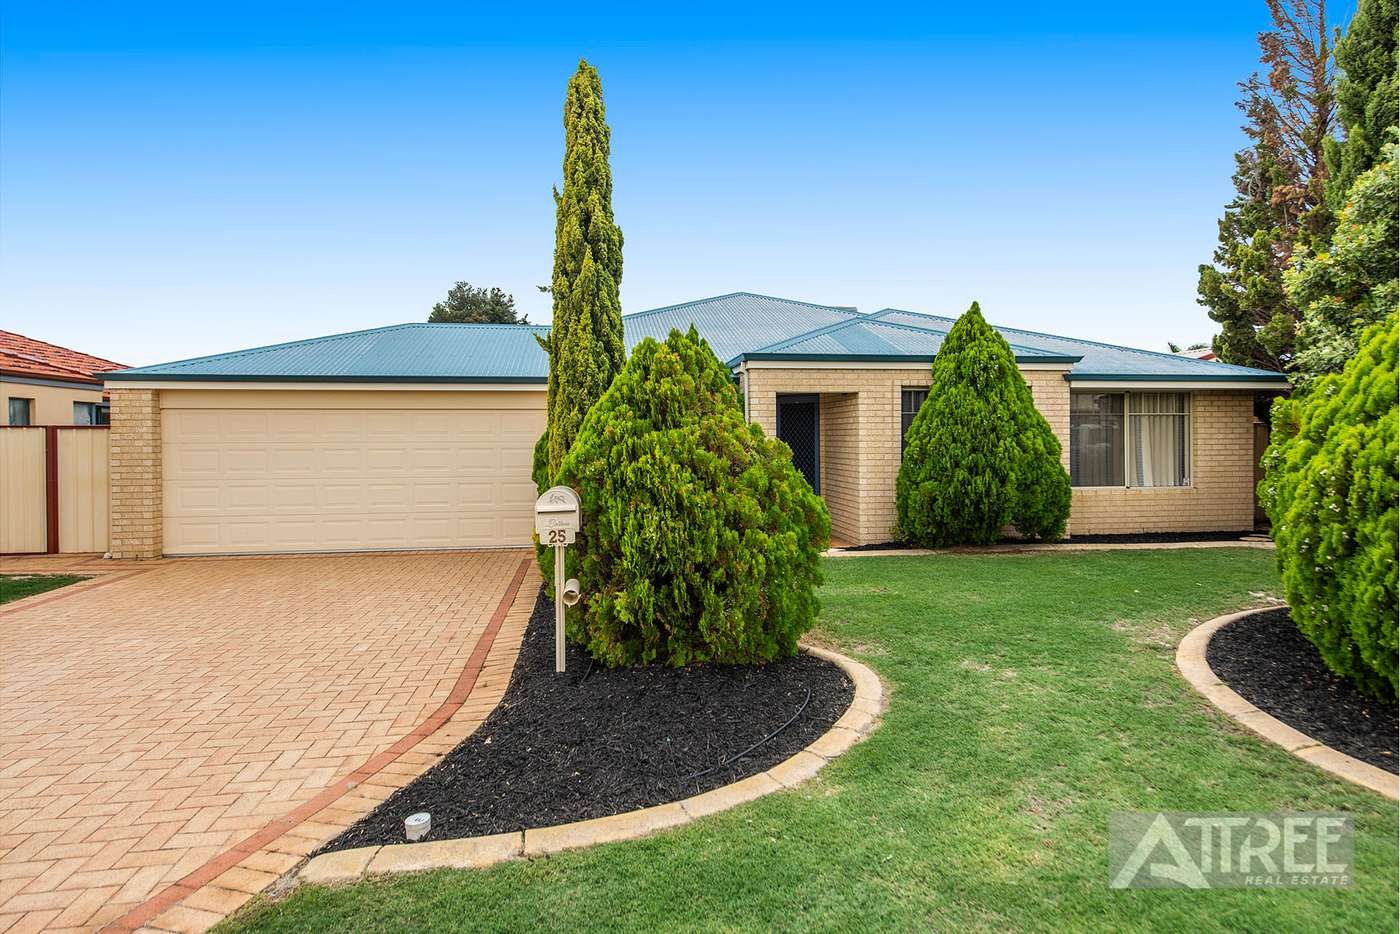 Main view of Homely house listing, 25 Antigua Place, Southern River WA 6110